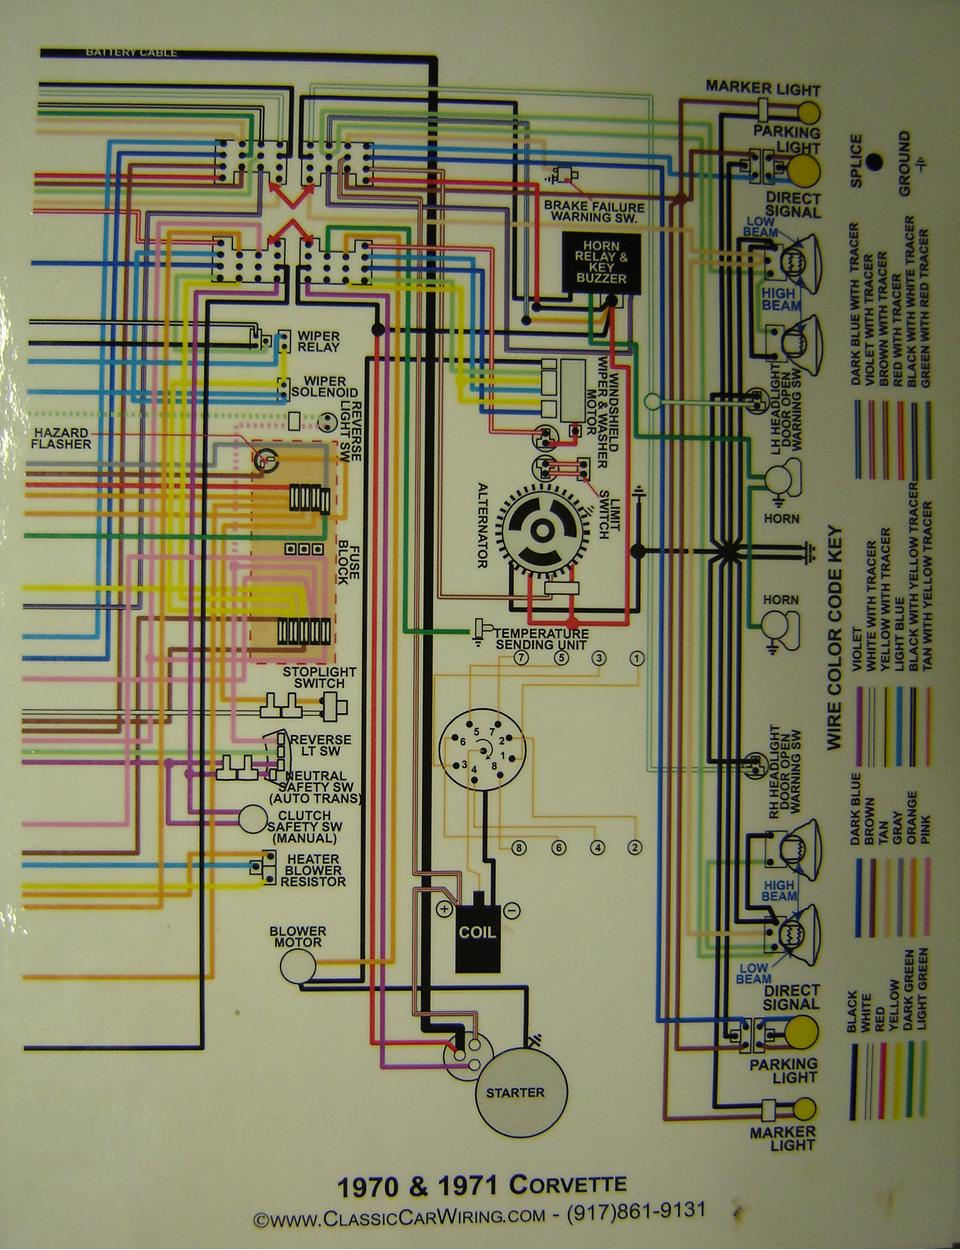 1970 71 corvette color wiring diagram B chevy diagrams 84 el camino wiring diagram at gsmx.co